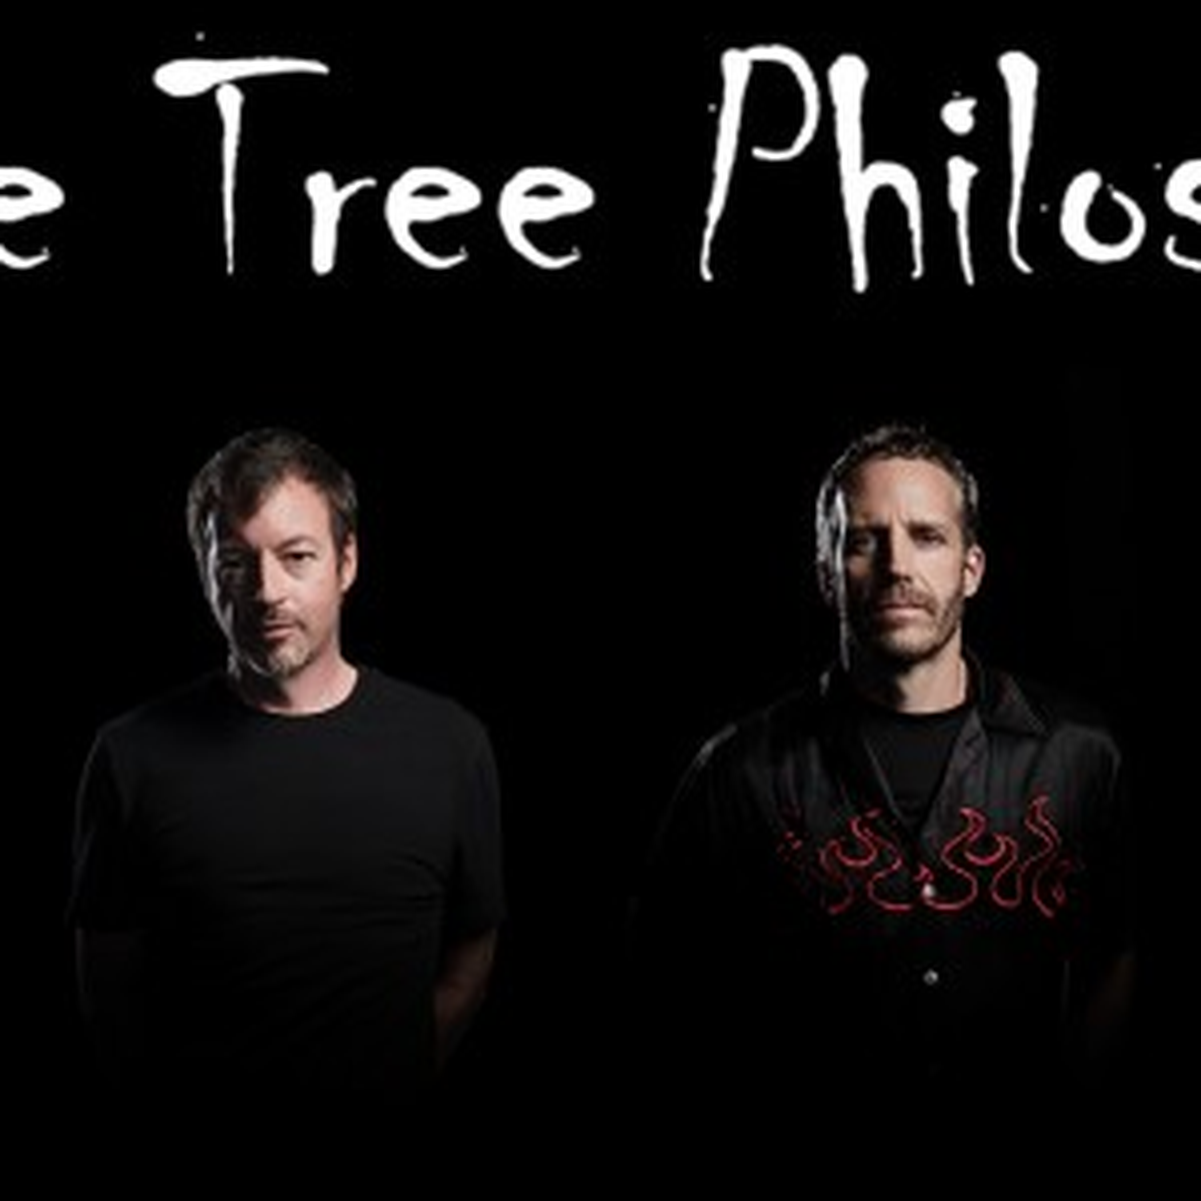 Shade Tree Philosophy wiki, Shade Tree Philosophy review, Shade Tree Philosophy history, Shade Tree Philosophy news